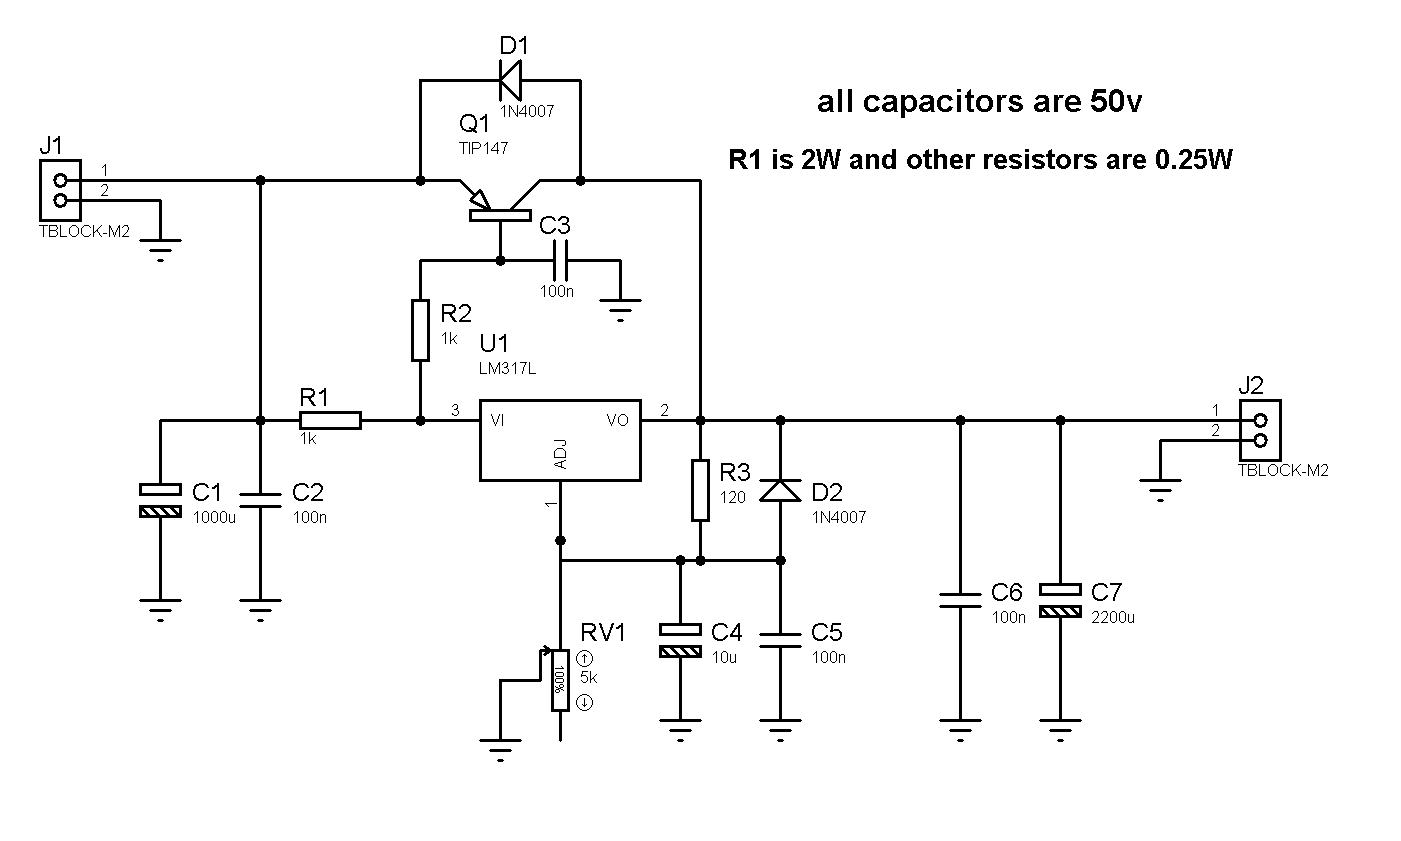 Excellent 1 2 36V 5A Adjustable Power Supply With Lm317 Electronice In 2019 Wiring Cloud Uslyletkolfr09Org